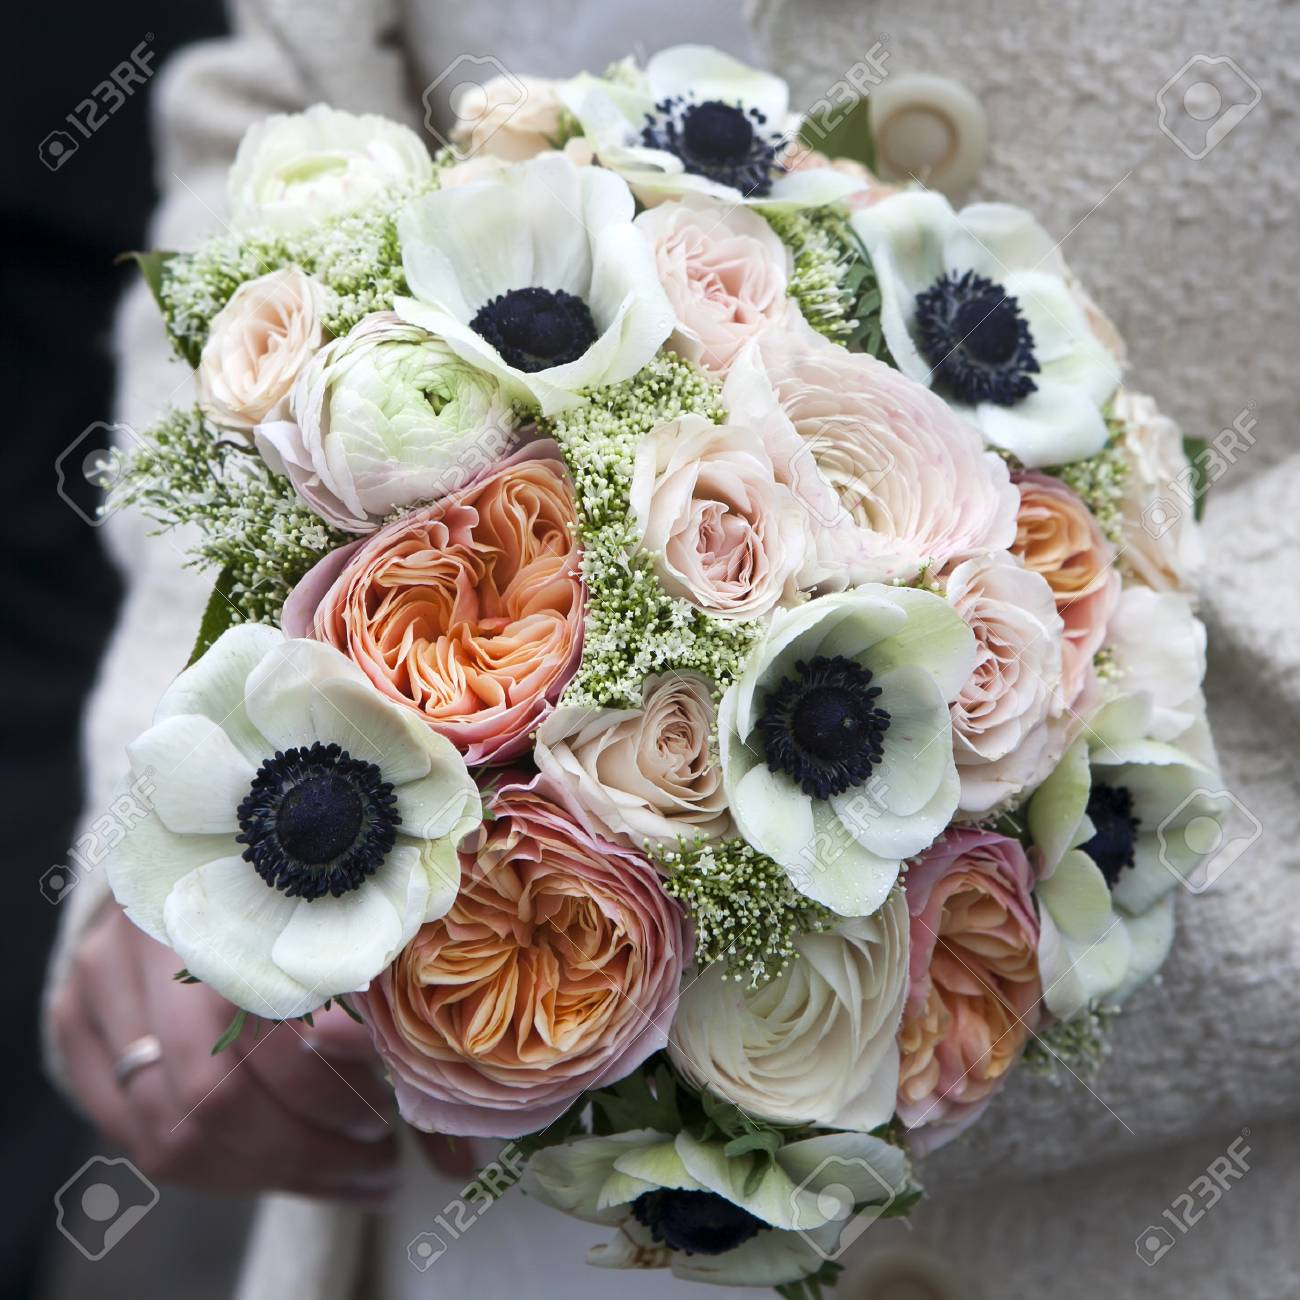 Bride Holds Wedding Bouquet Of Pink Roses And White Anemone And ...